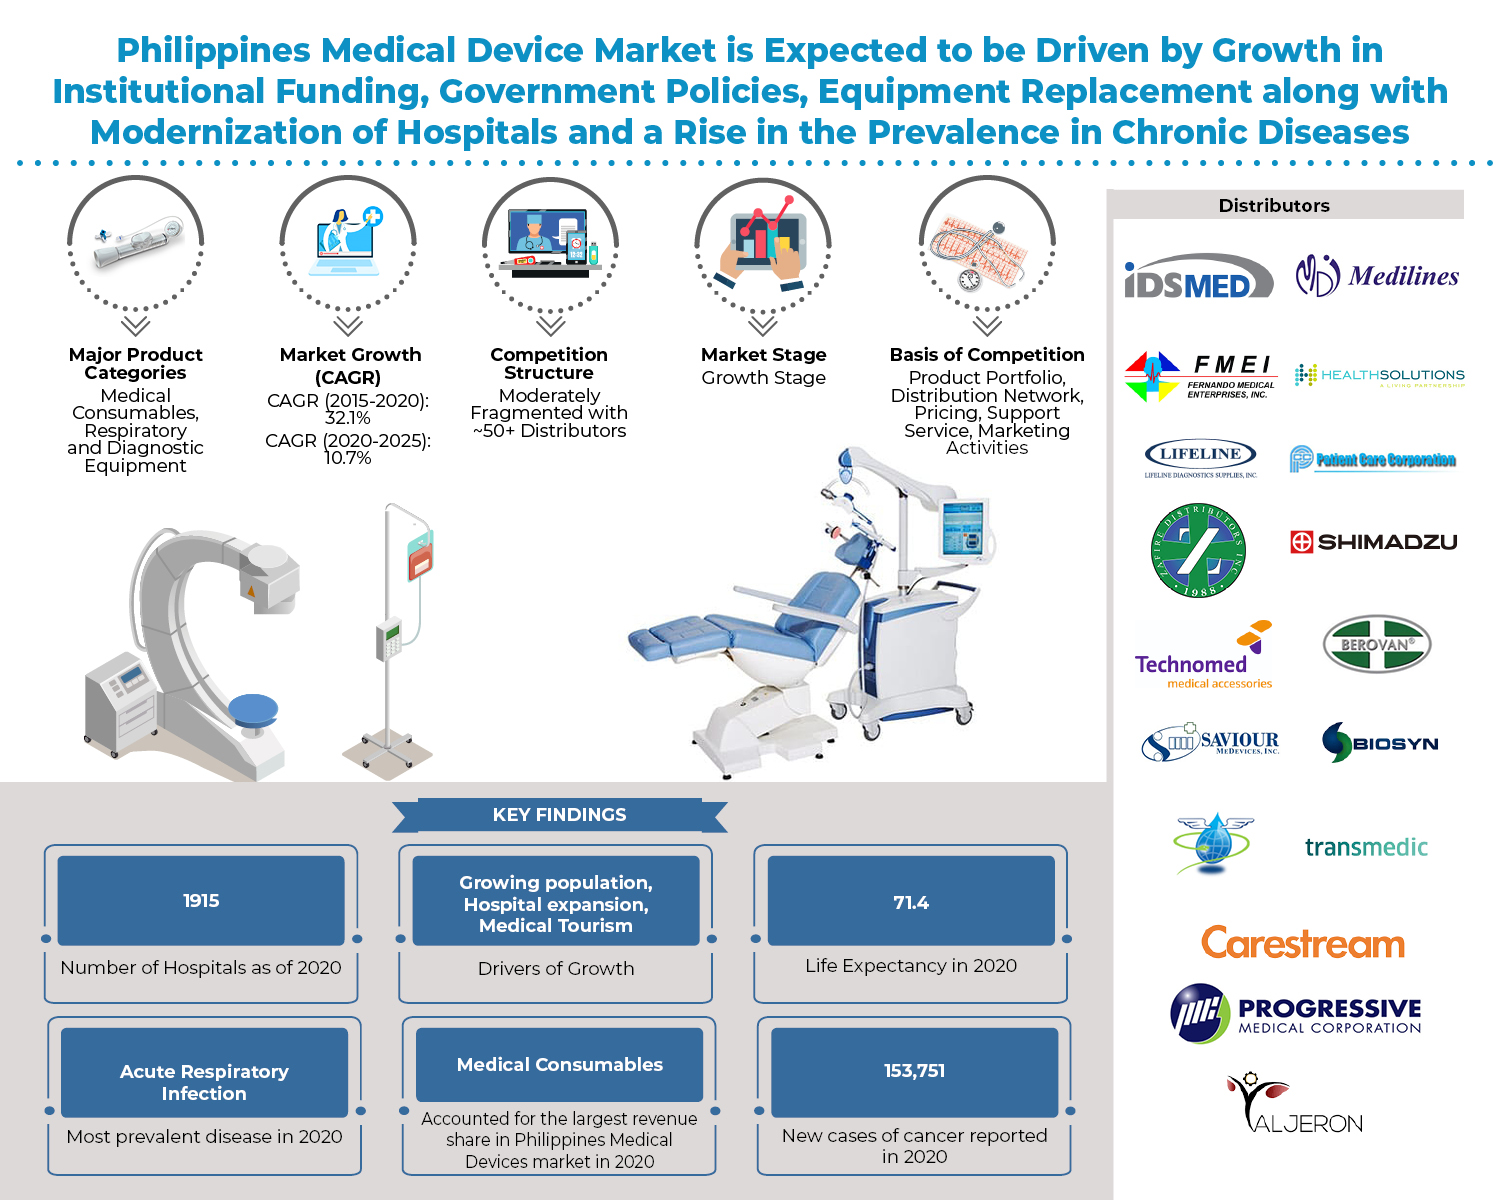 Philippines Medical Device market is expected to reach to a value of PHP 130Billion by 2025, with a double digit growth CAGR during the next five years: Ken Research